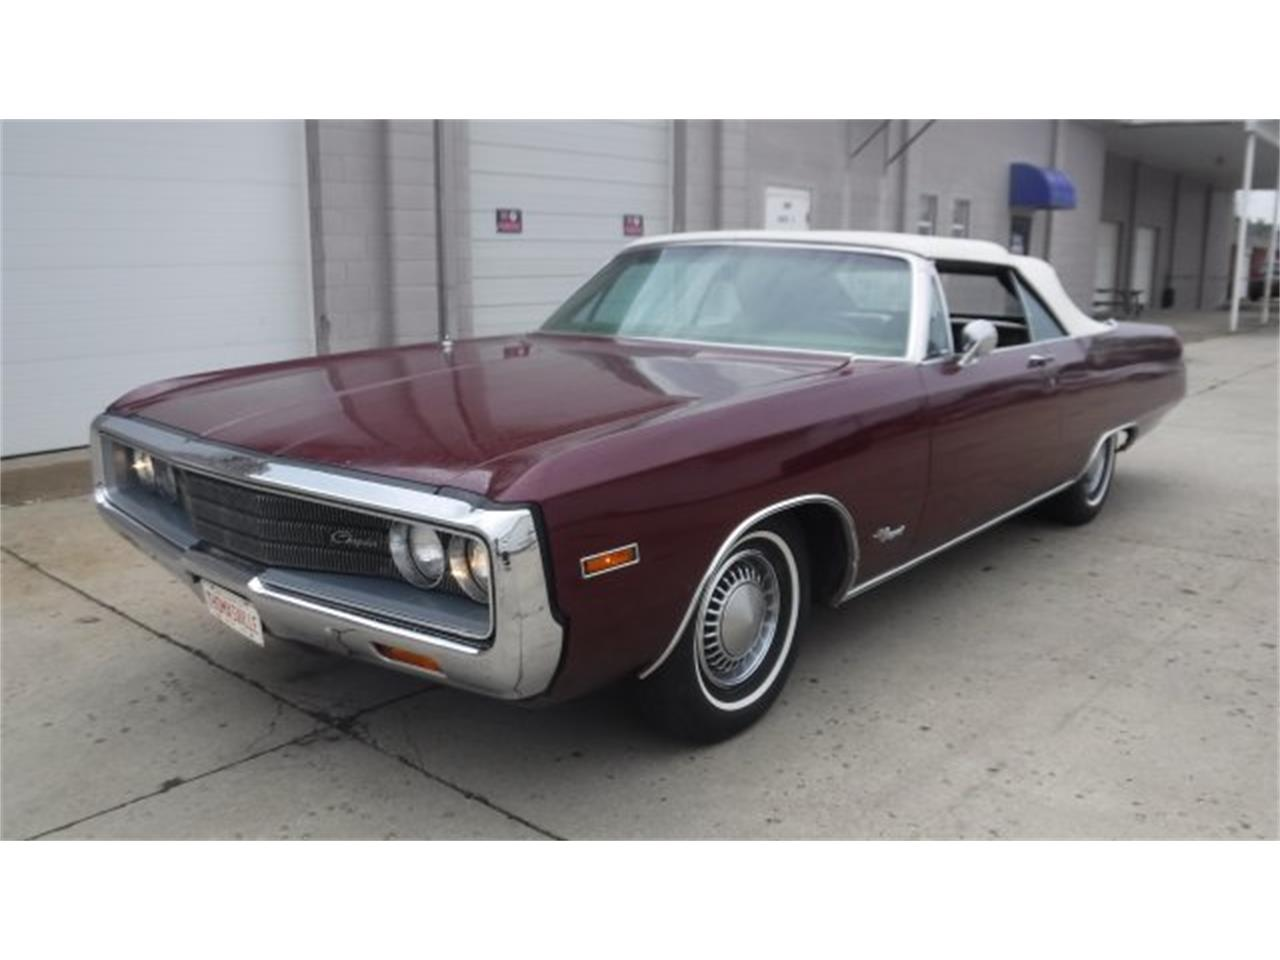 1970 Chrysler Newport (CC-1132919) for sale in Milford, Ohio